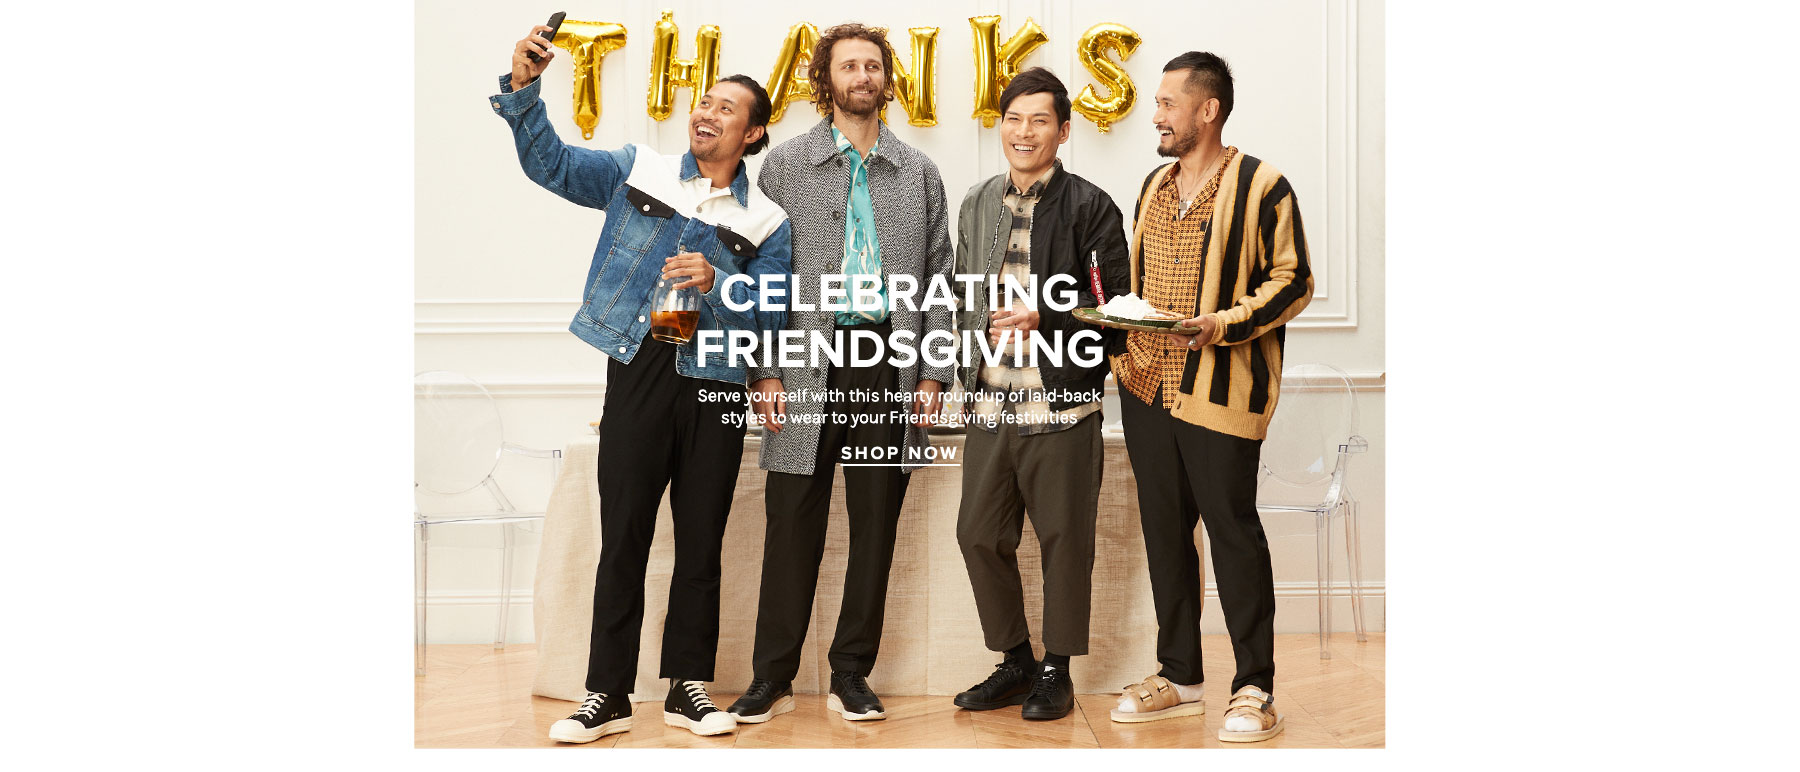 Celebrating Friendsgiving. Get seconds and slip into a food coma while still looking your best with this roundup of laid-back styles to wear to your Friendsgiving festivities. Shop Now.